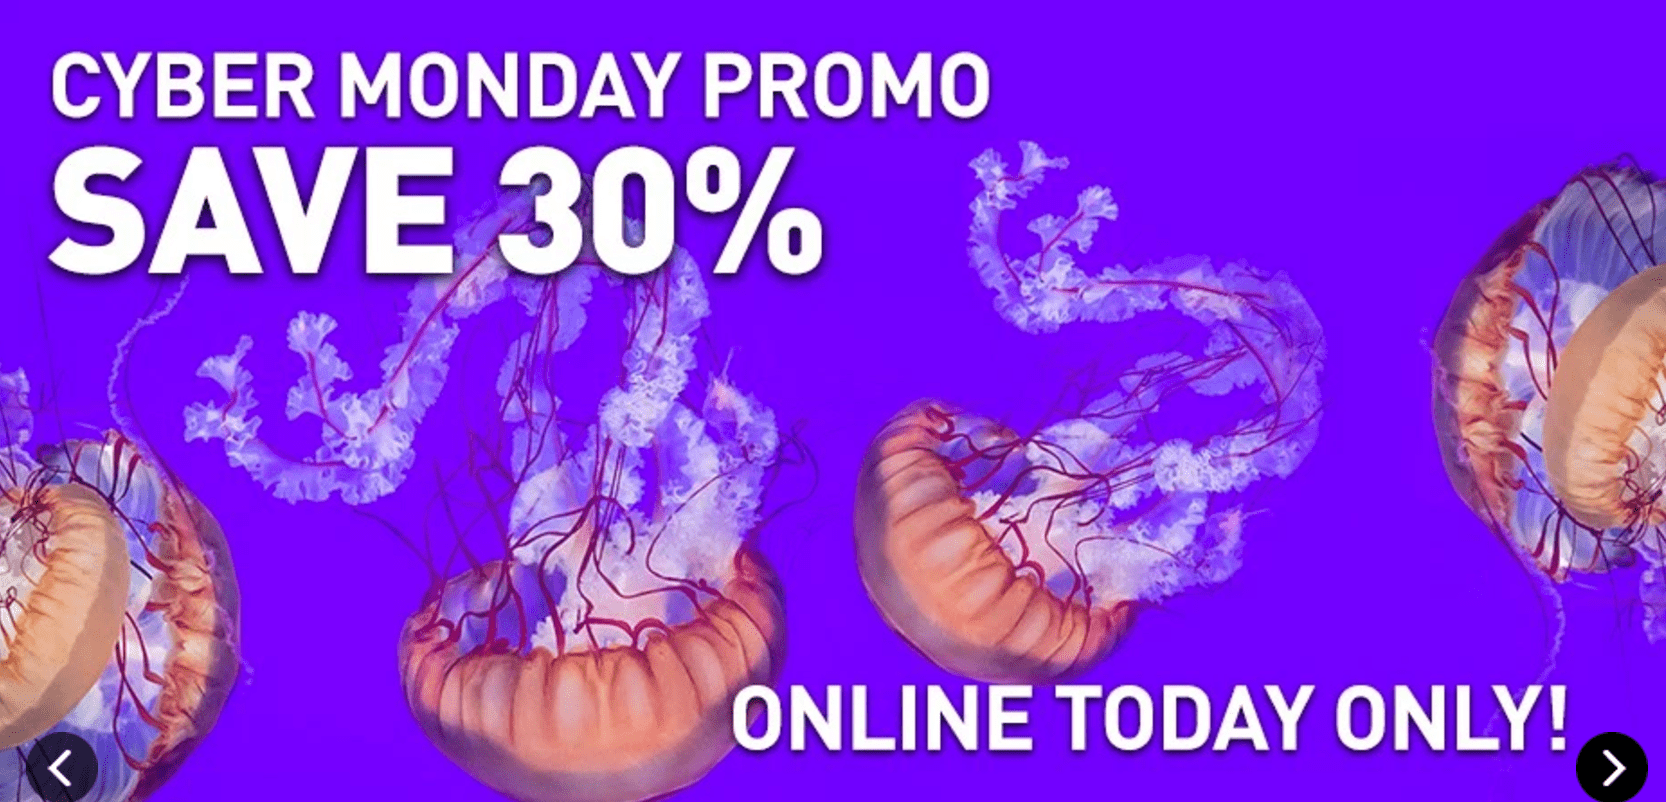 Ripley's Aquarium of Canada Cyber Monday *HOT* Deal: Save 30% Off Tickets, Buy Today & Use by End of Year!